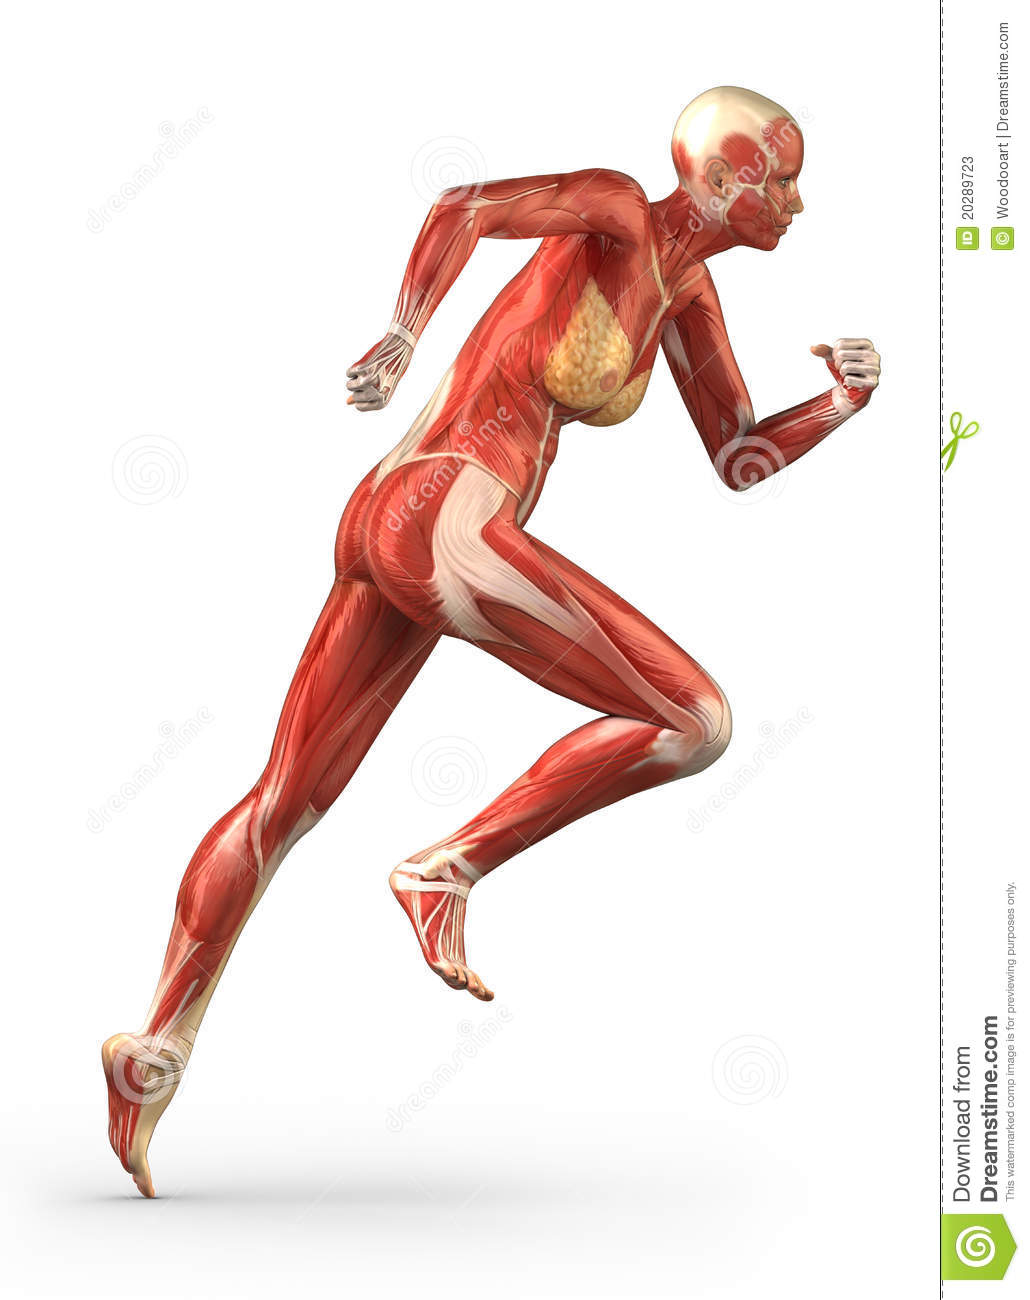 Running Woman Muscular System Anatomy Lateral View Stock ...